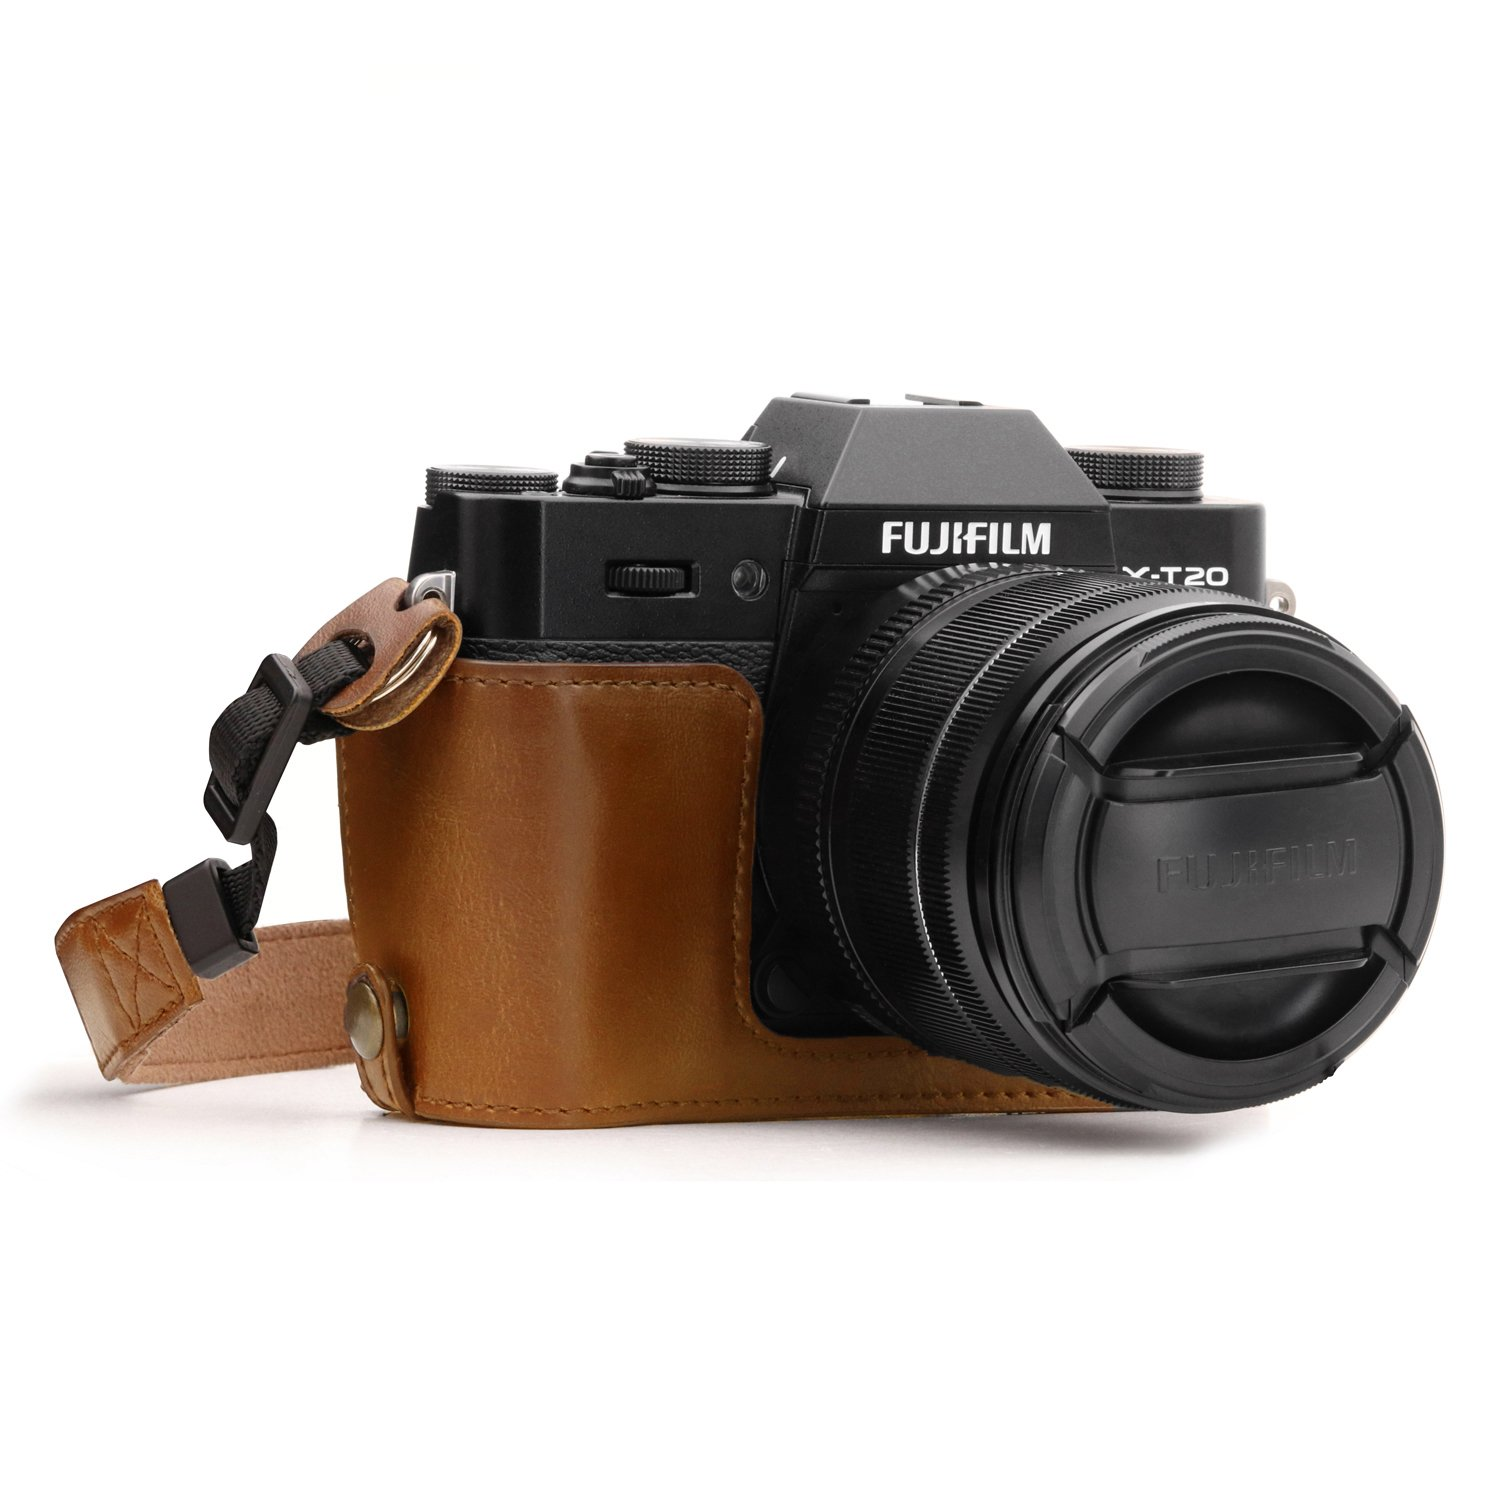 MegaGear MG958 Fujifilm X-T20, X-T10 Ever Ready Leather Camera Half Case and Strap, with Battery Access, Dark Brown